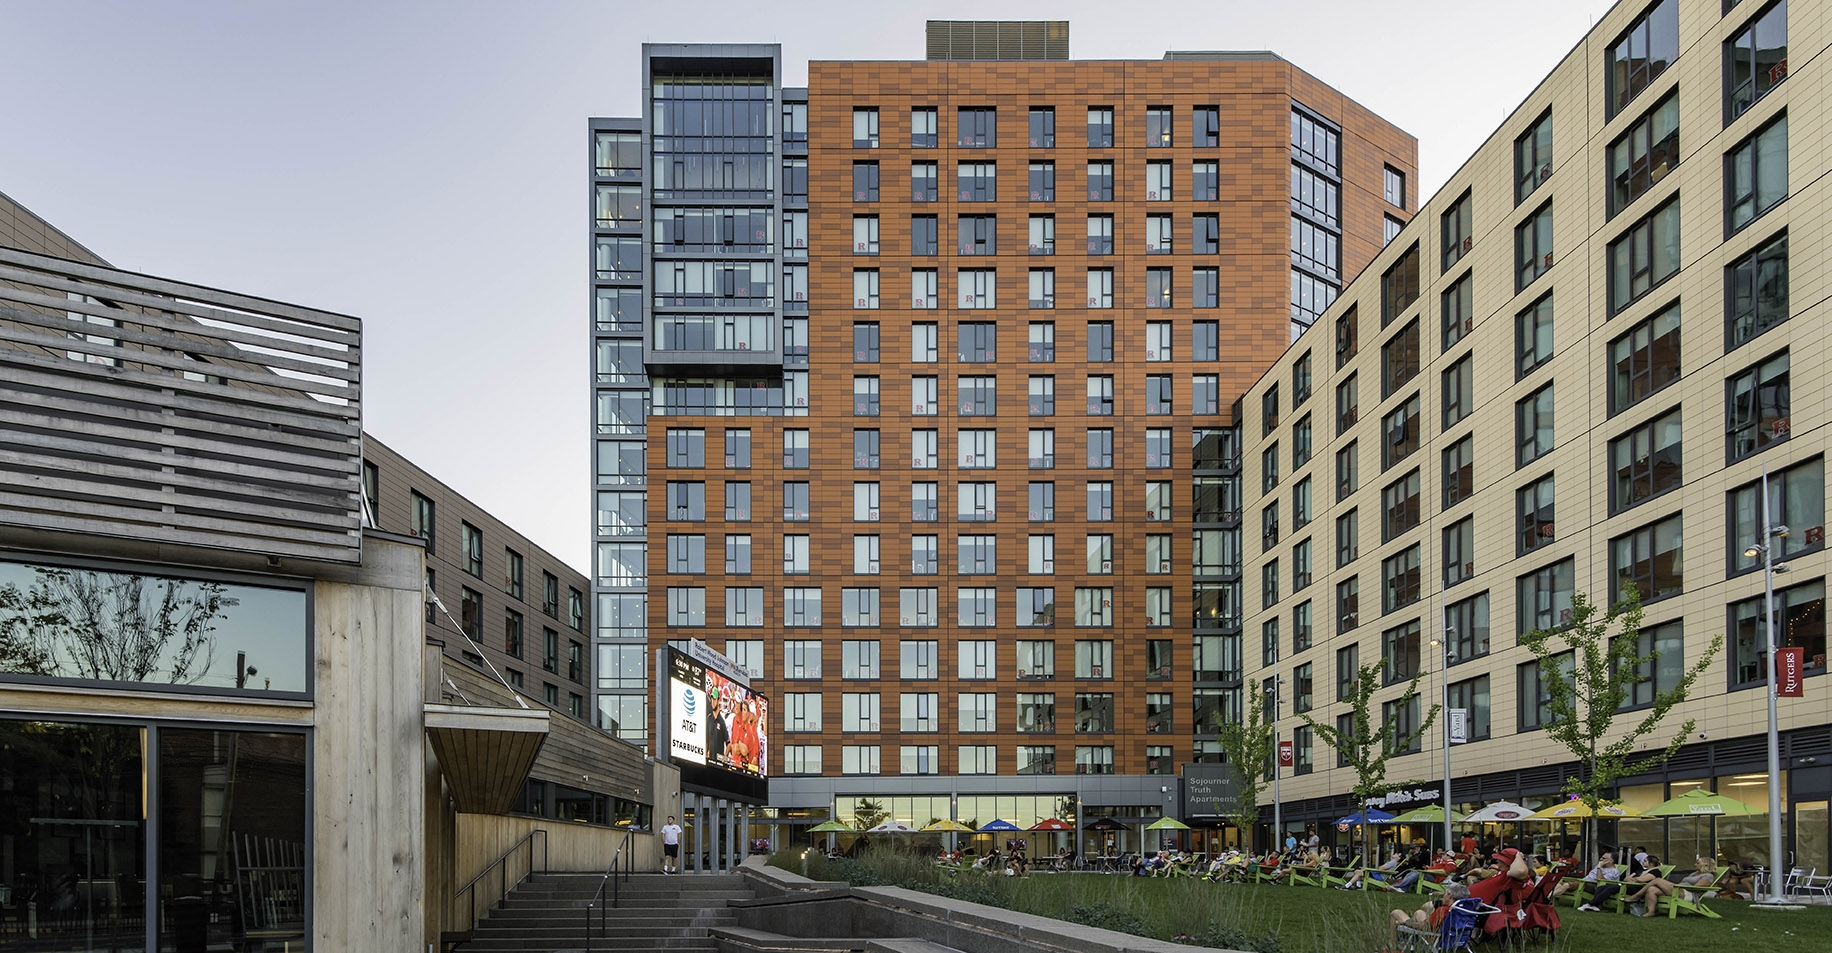 The Sojourner Apartments at Rutgers University